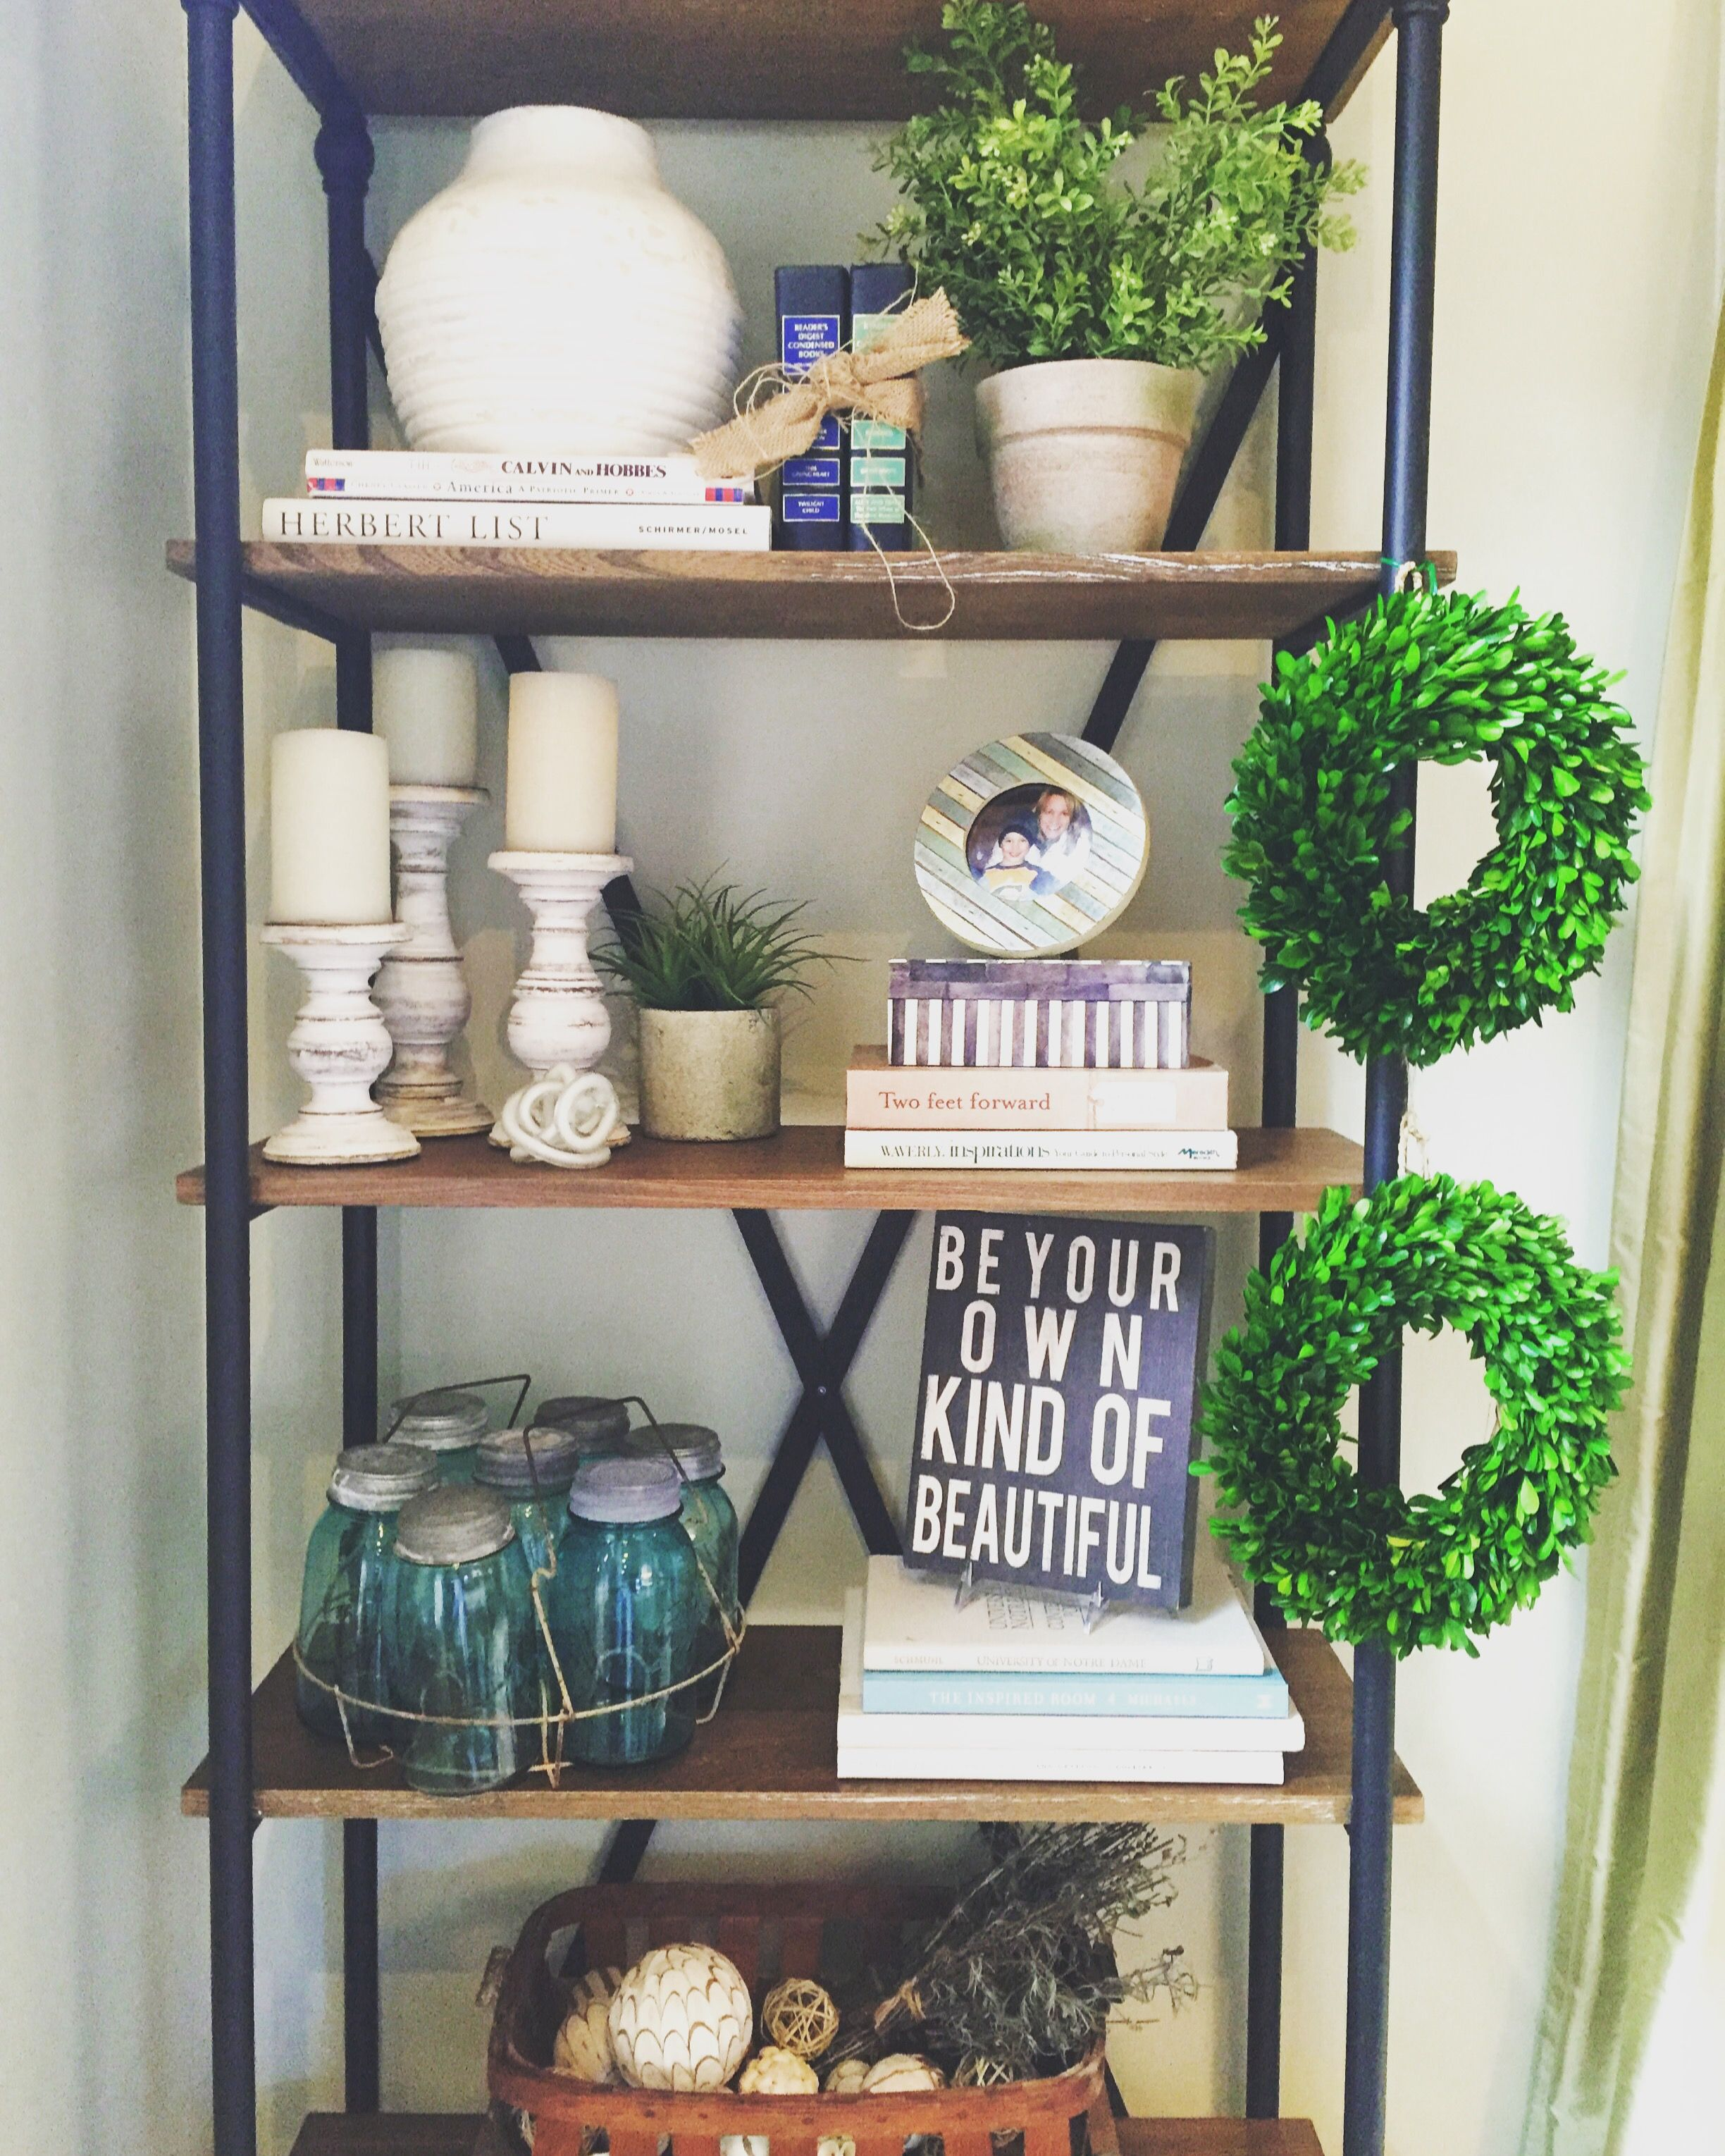 Modern Farmhouse Bookshelf Styling Wayfair Greenery Cream Stoneware Wooden Accents Baskets Artwork